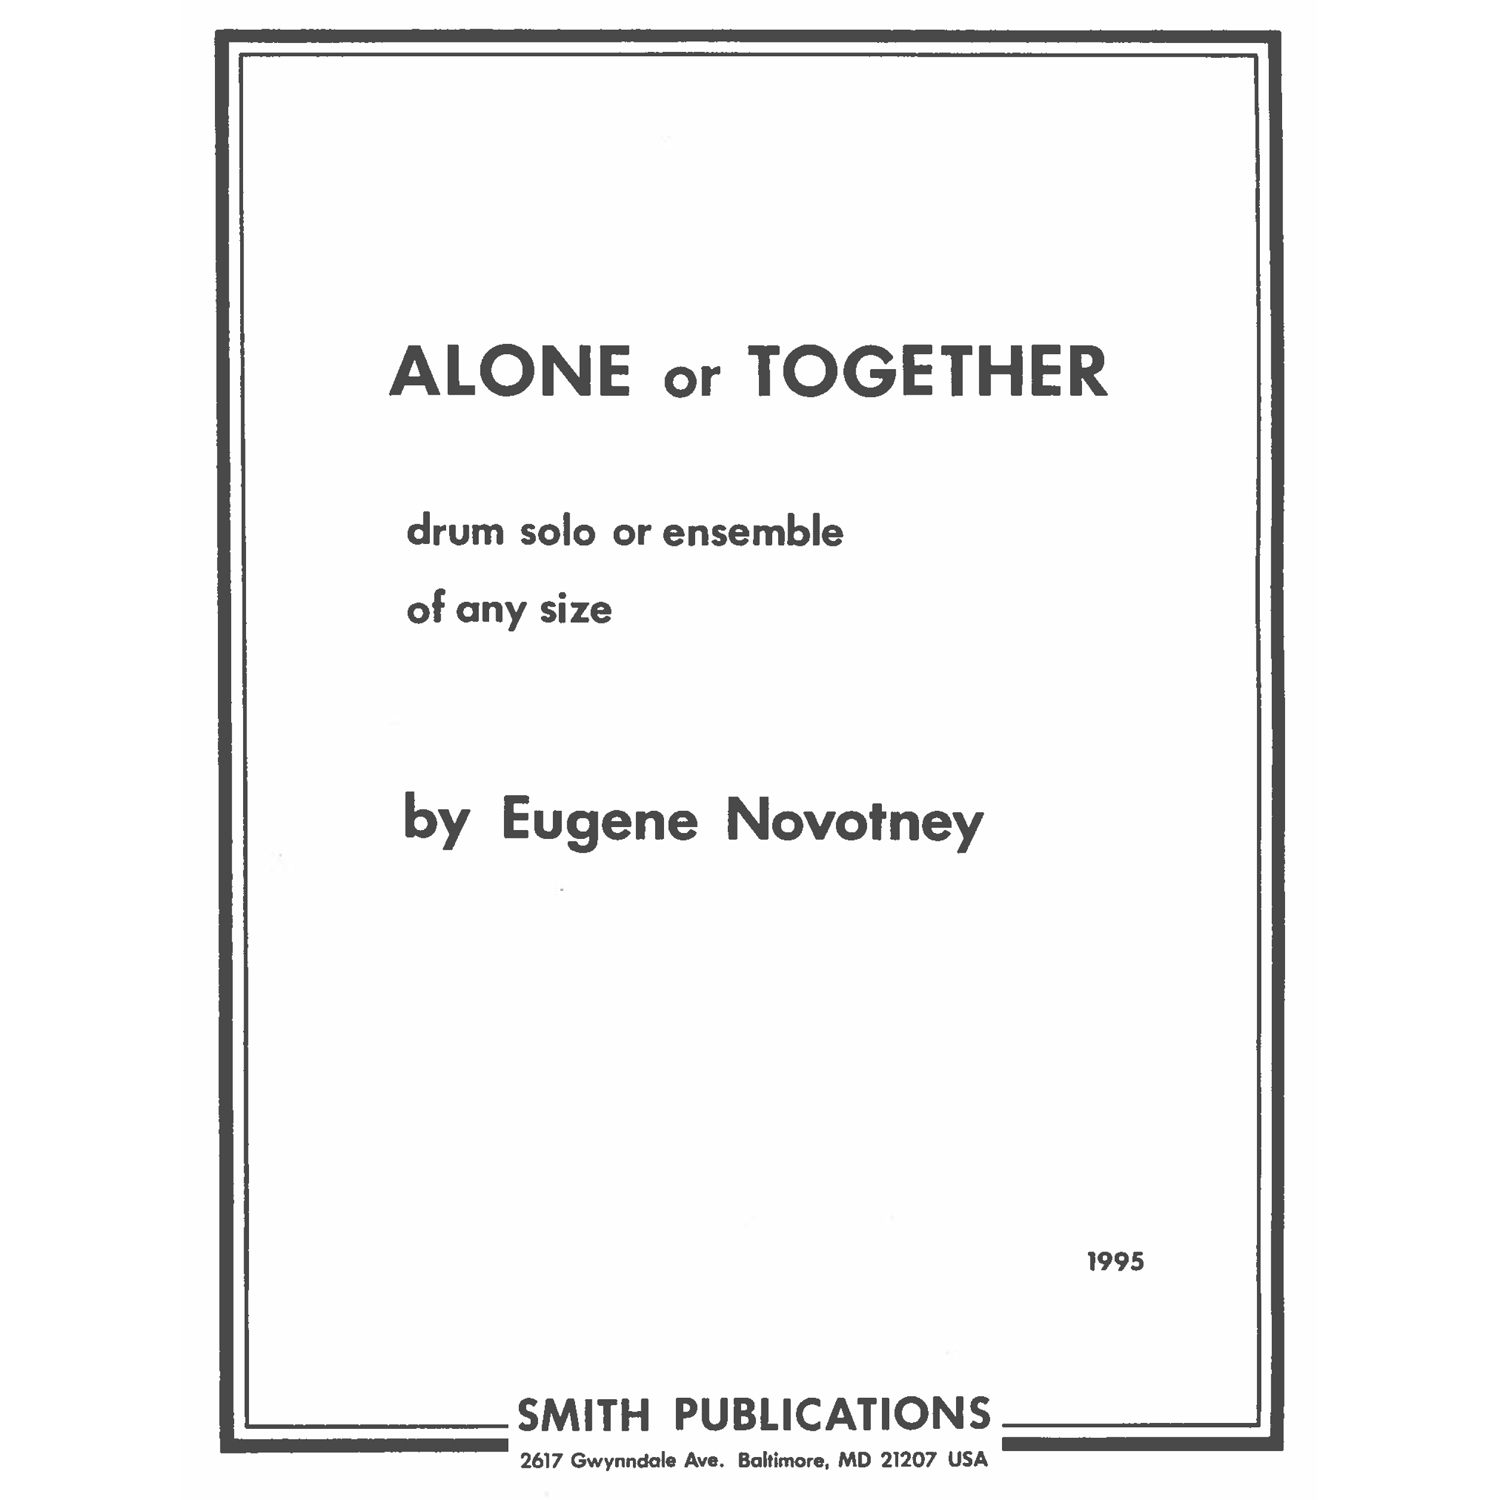 Alone or Together by Eugene Novotney